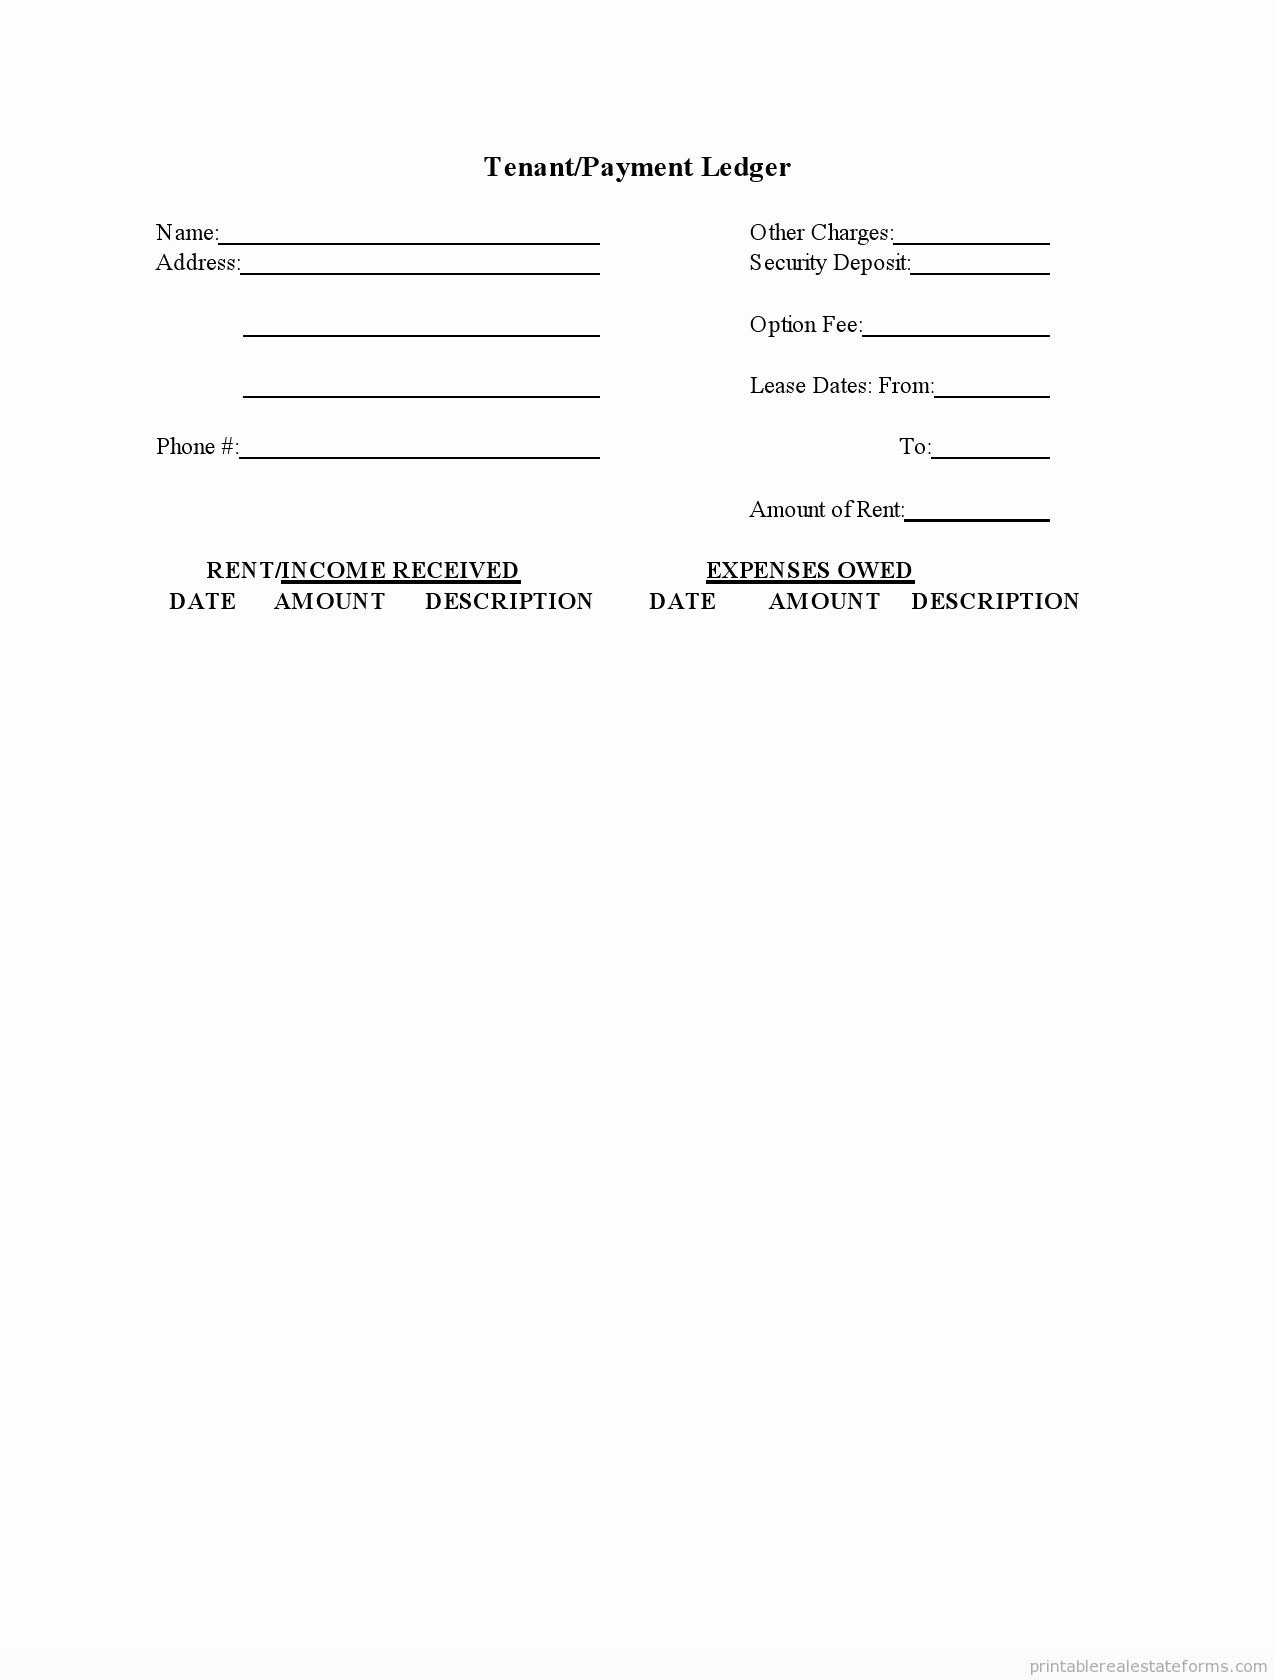 Self Employment Ledger forms New Sample Printable Tenant Payment Ledger form